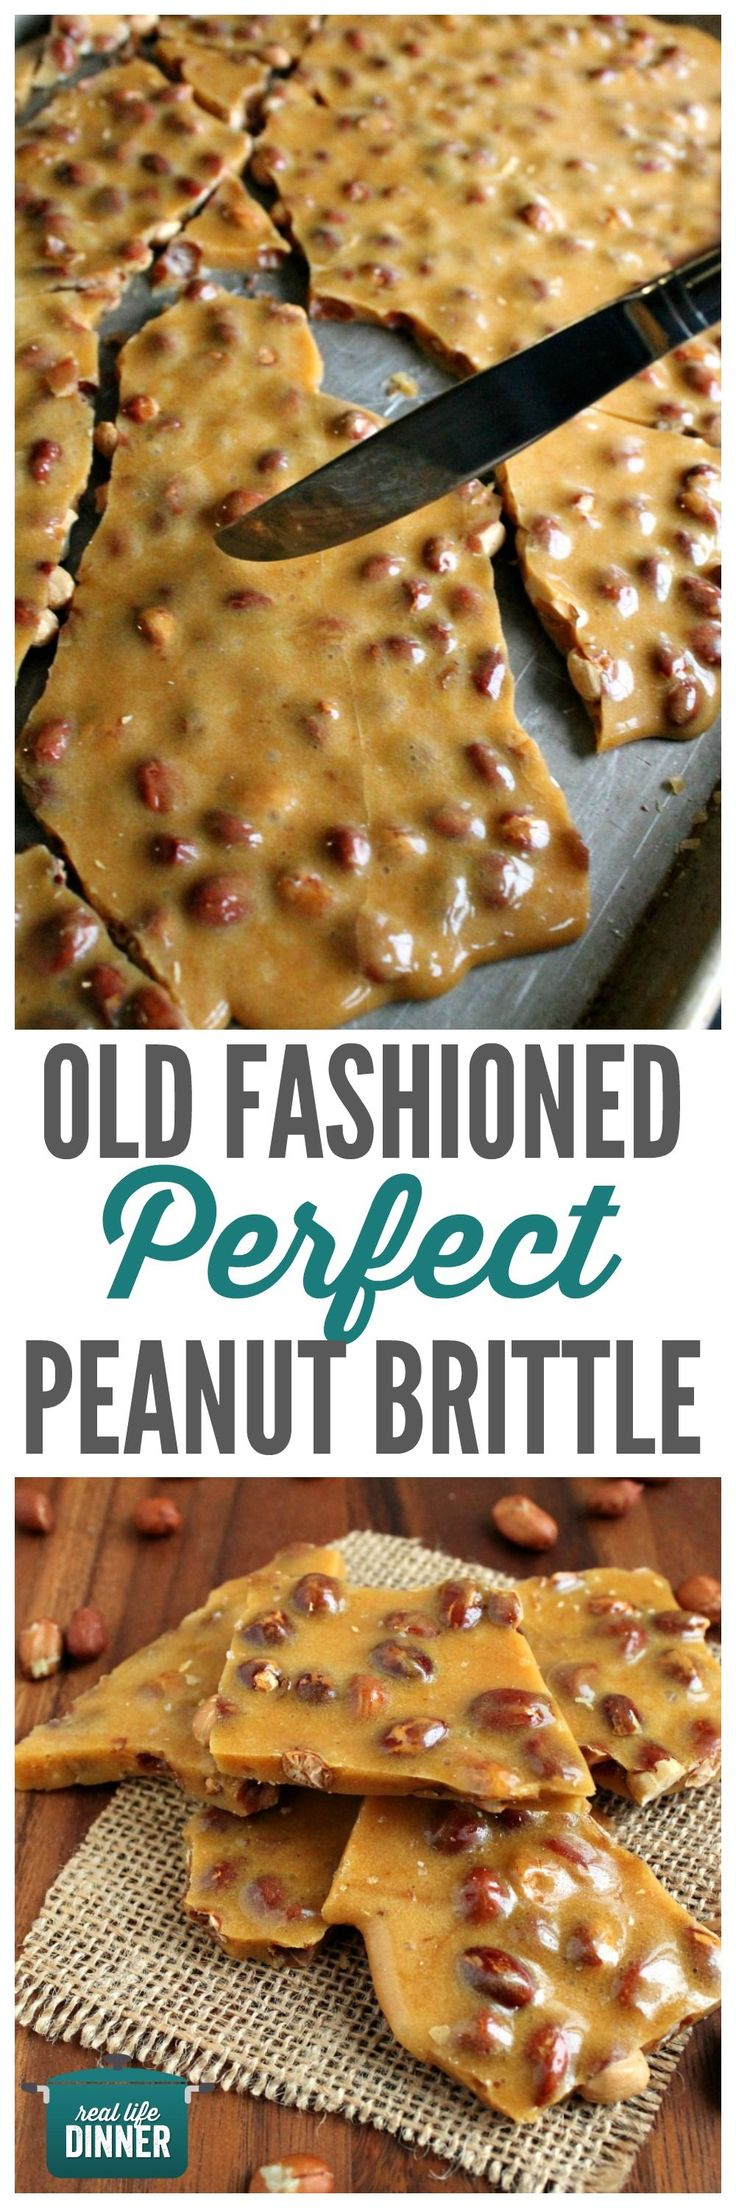 Mom's Best Peanut Brittle Recipe ~ https://reallifedinner.com